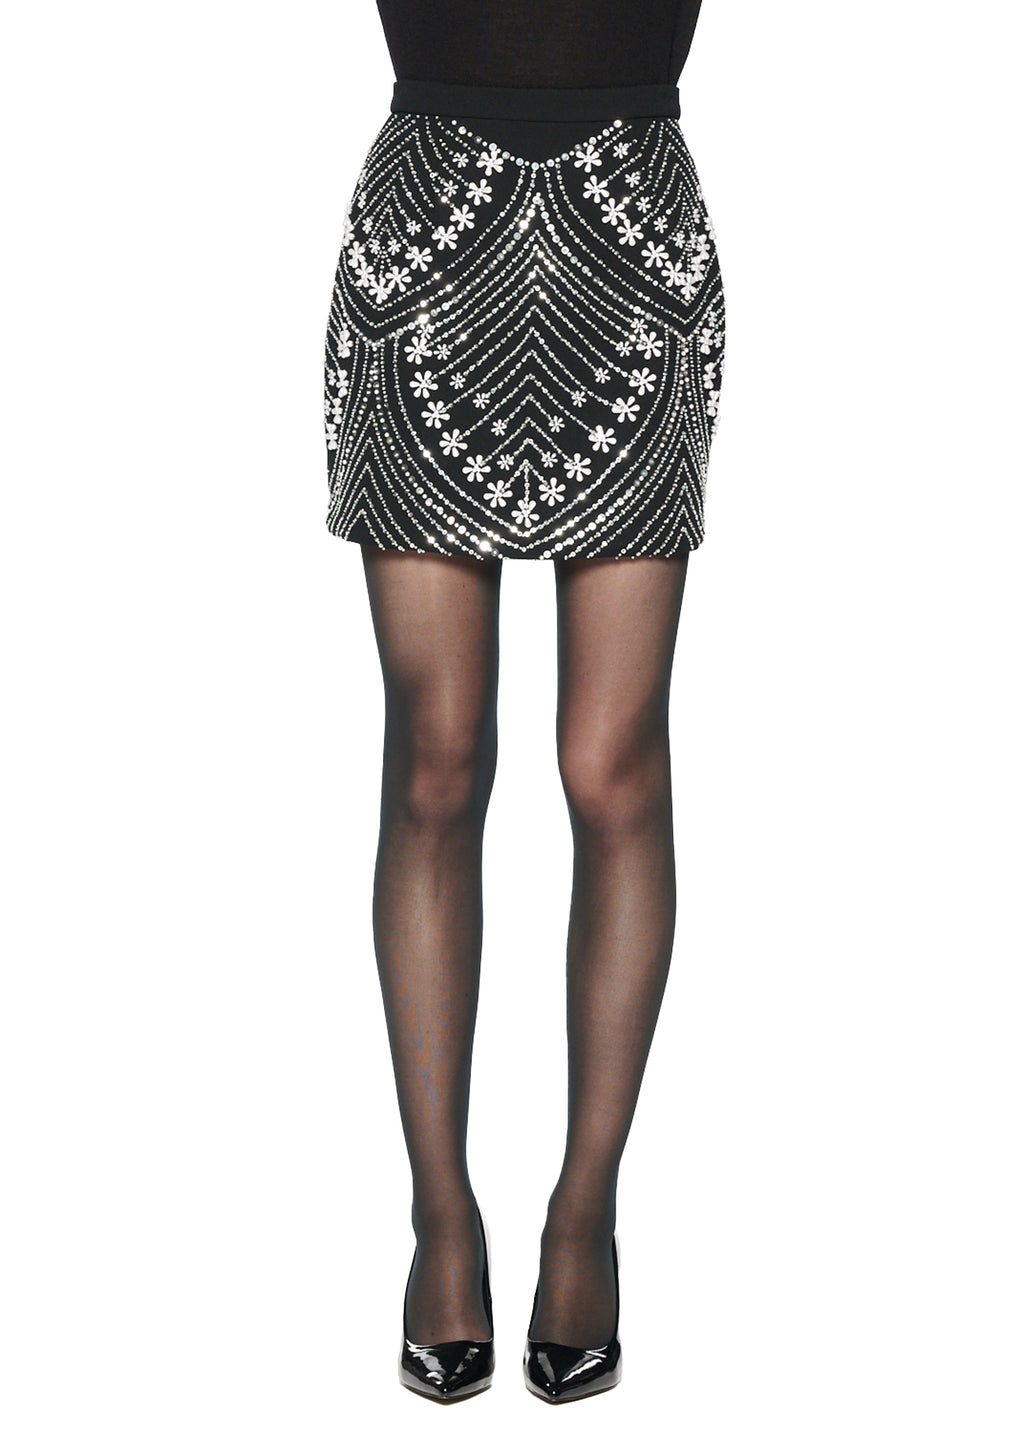 'Chevron' Pearls Skirt - Women's Bottoms - Libertine